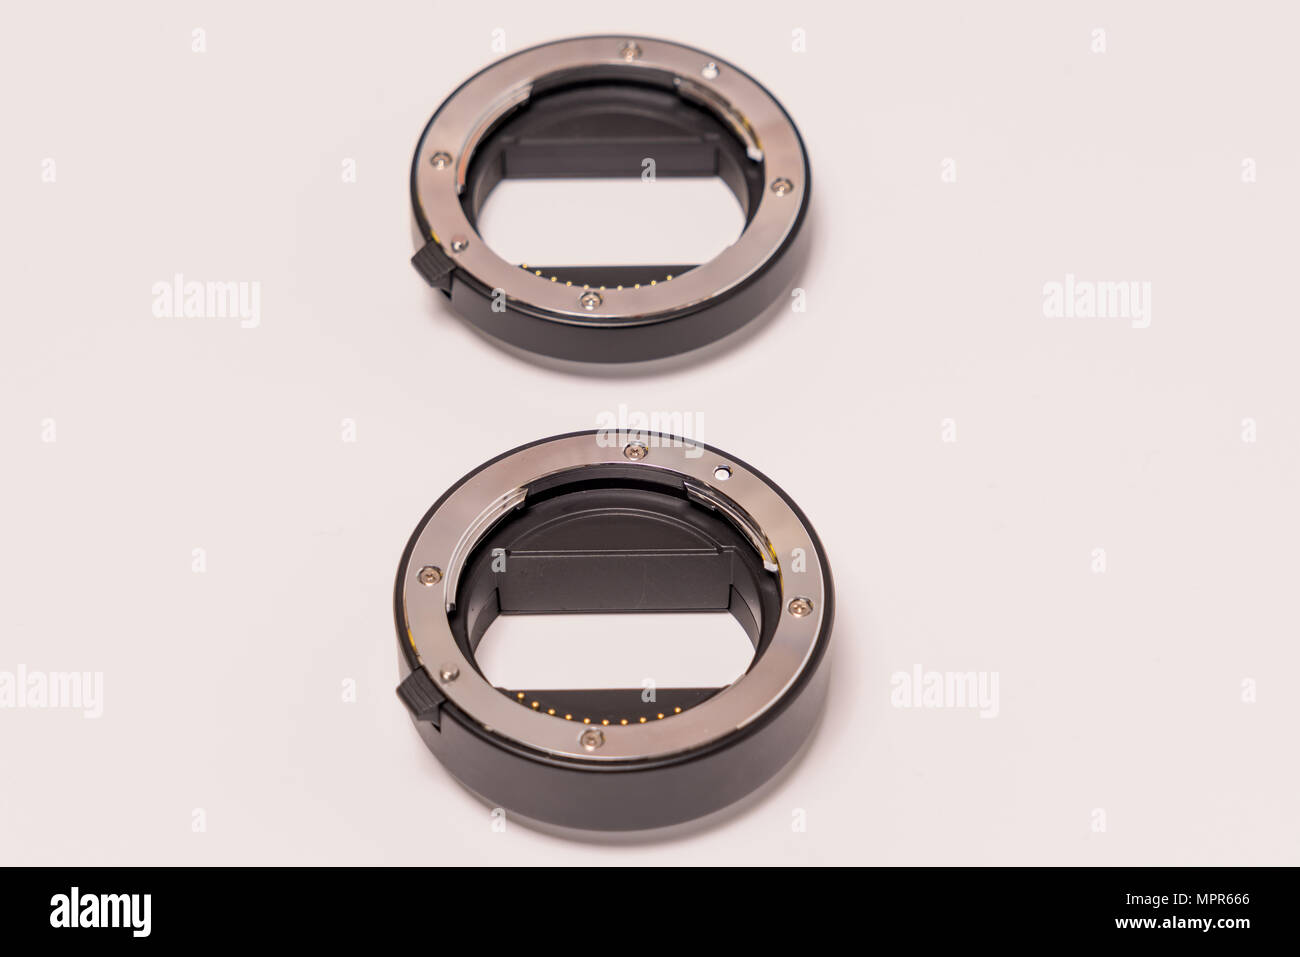 Double Ring Stock Photos Amp Double Ring Stock Images Alamy